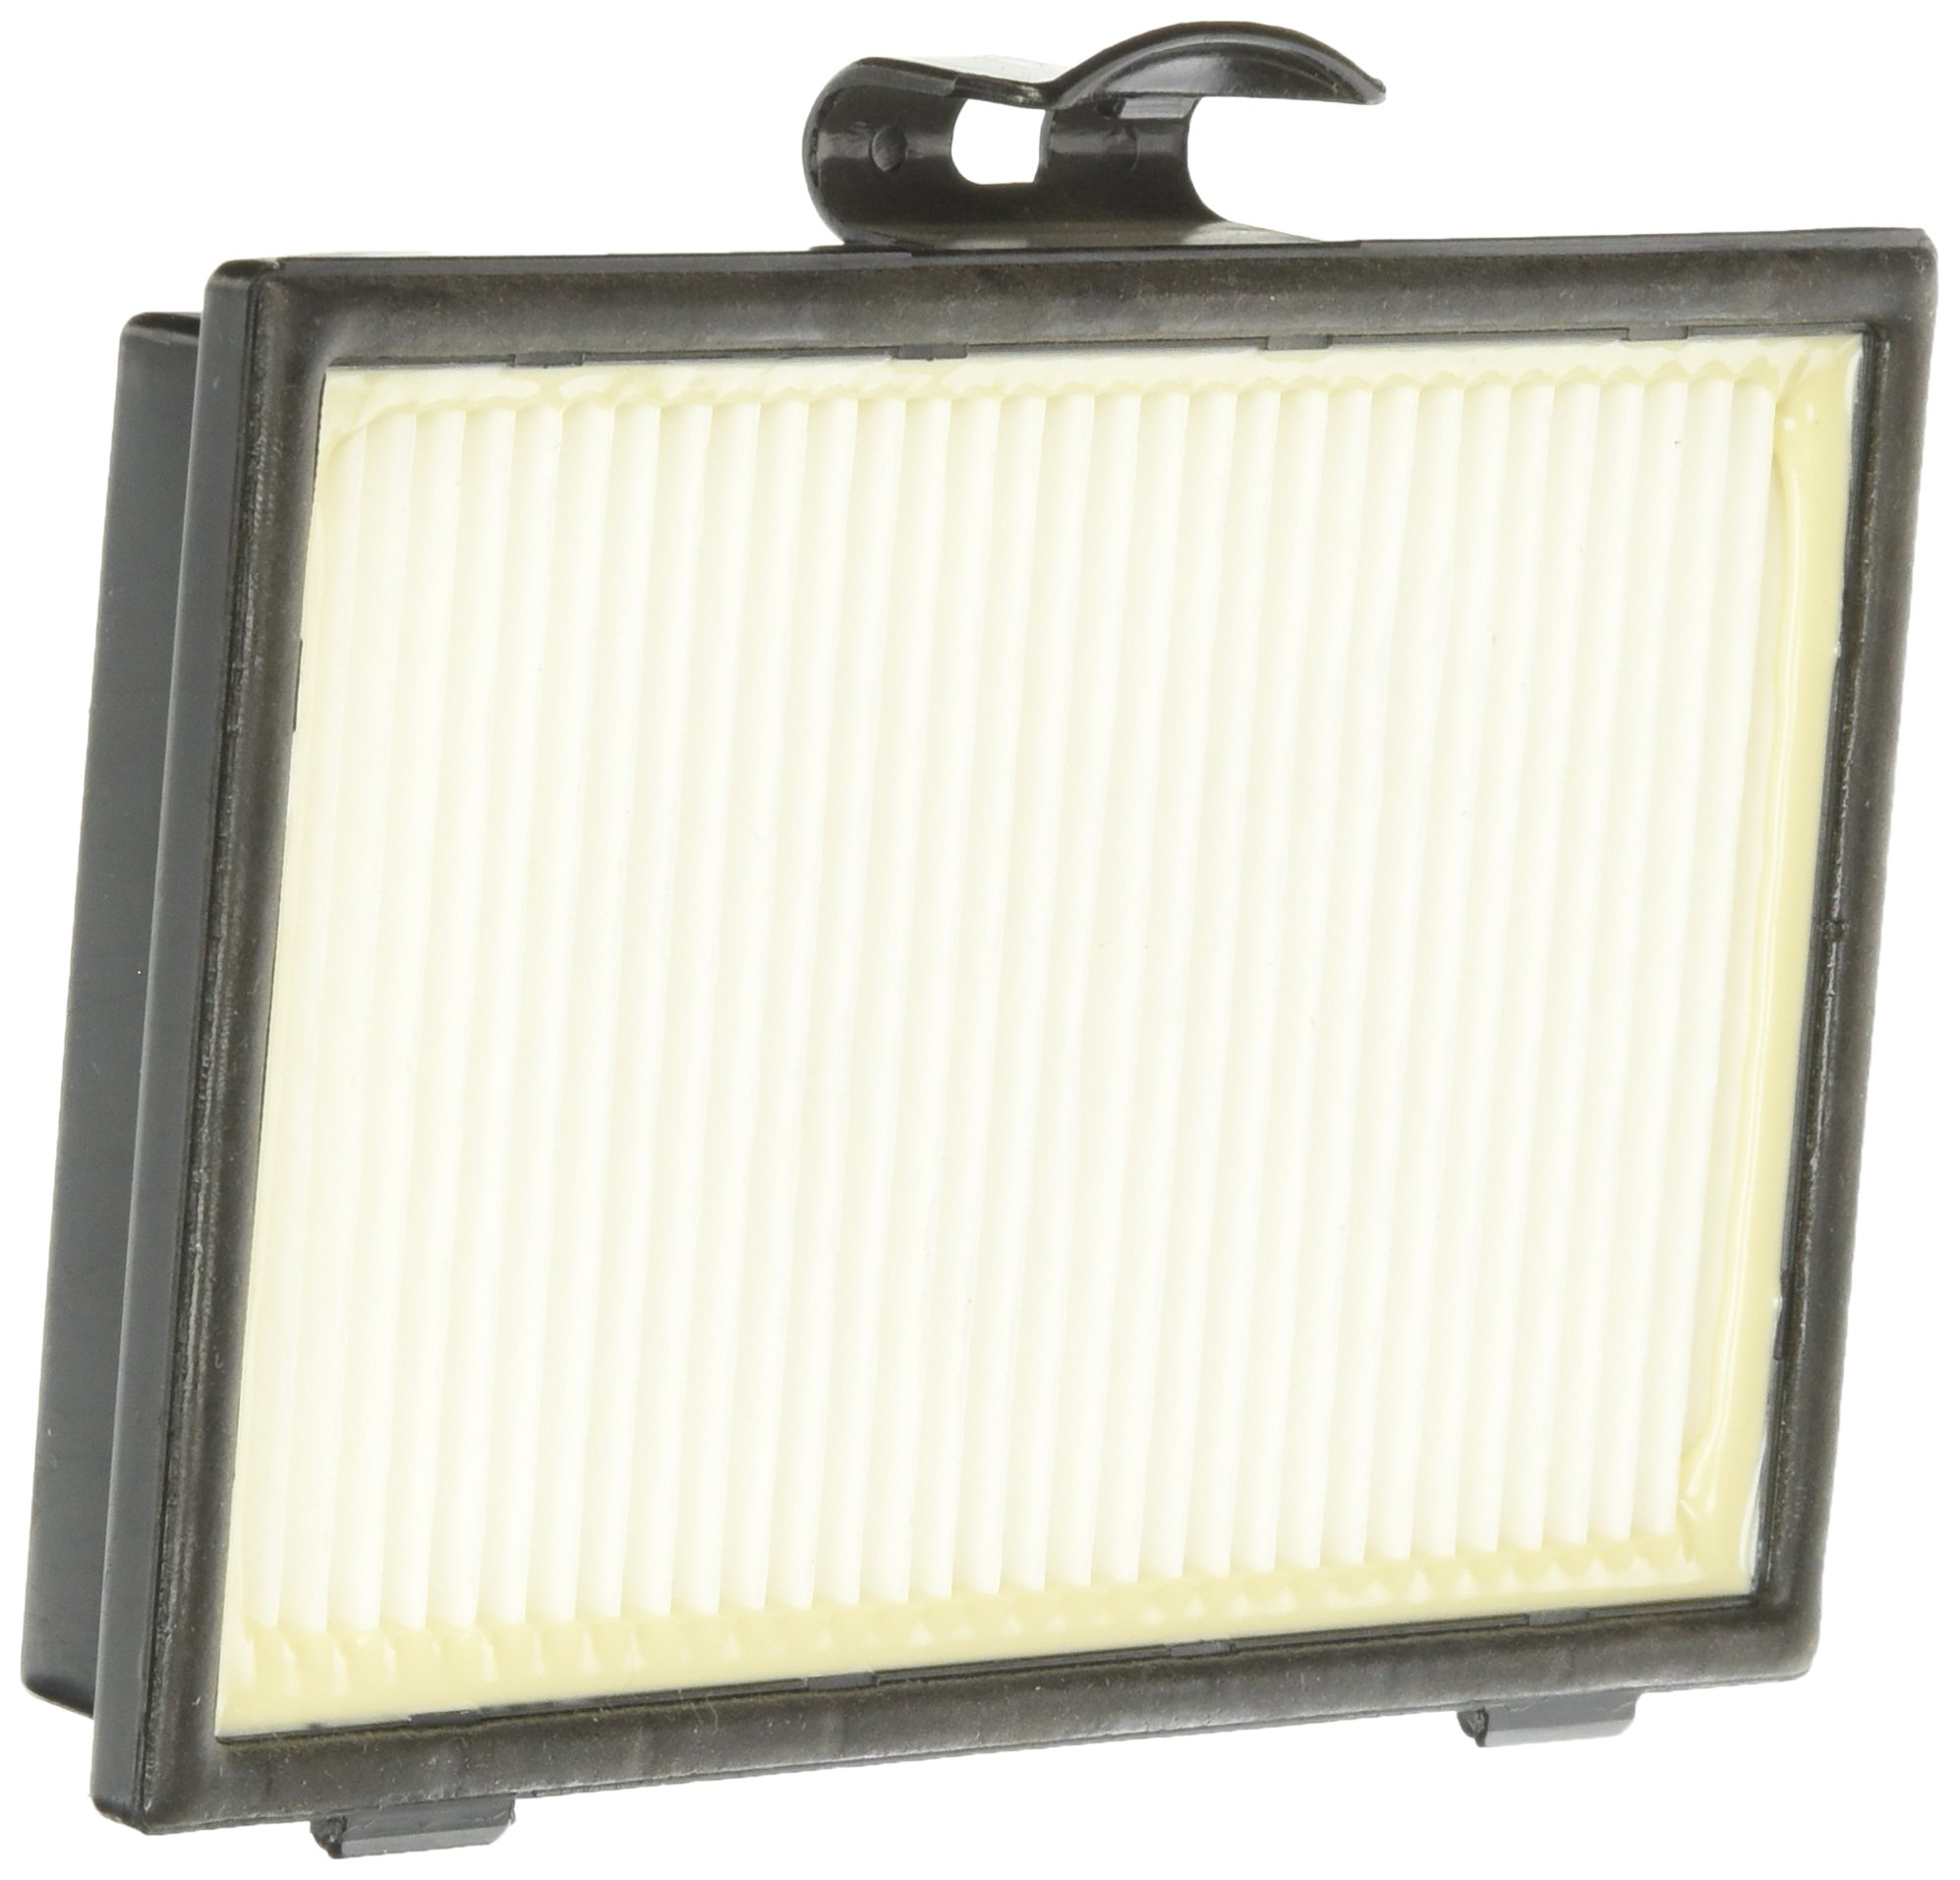 Filter, Exhaust Hepa 40 Window Pleated Can